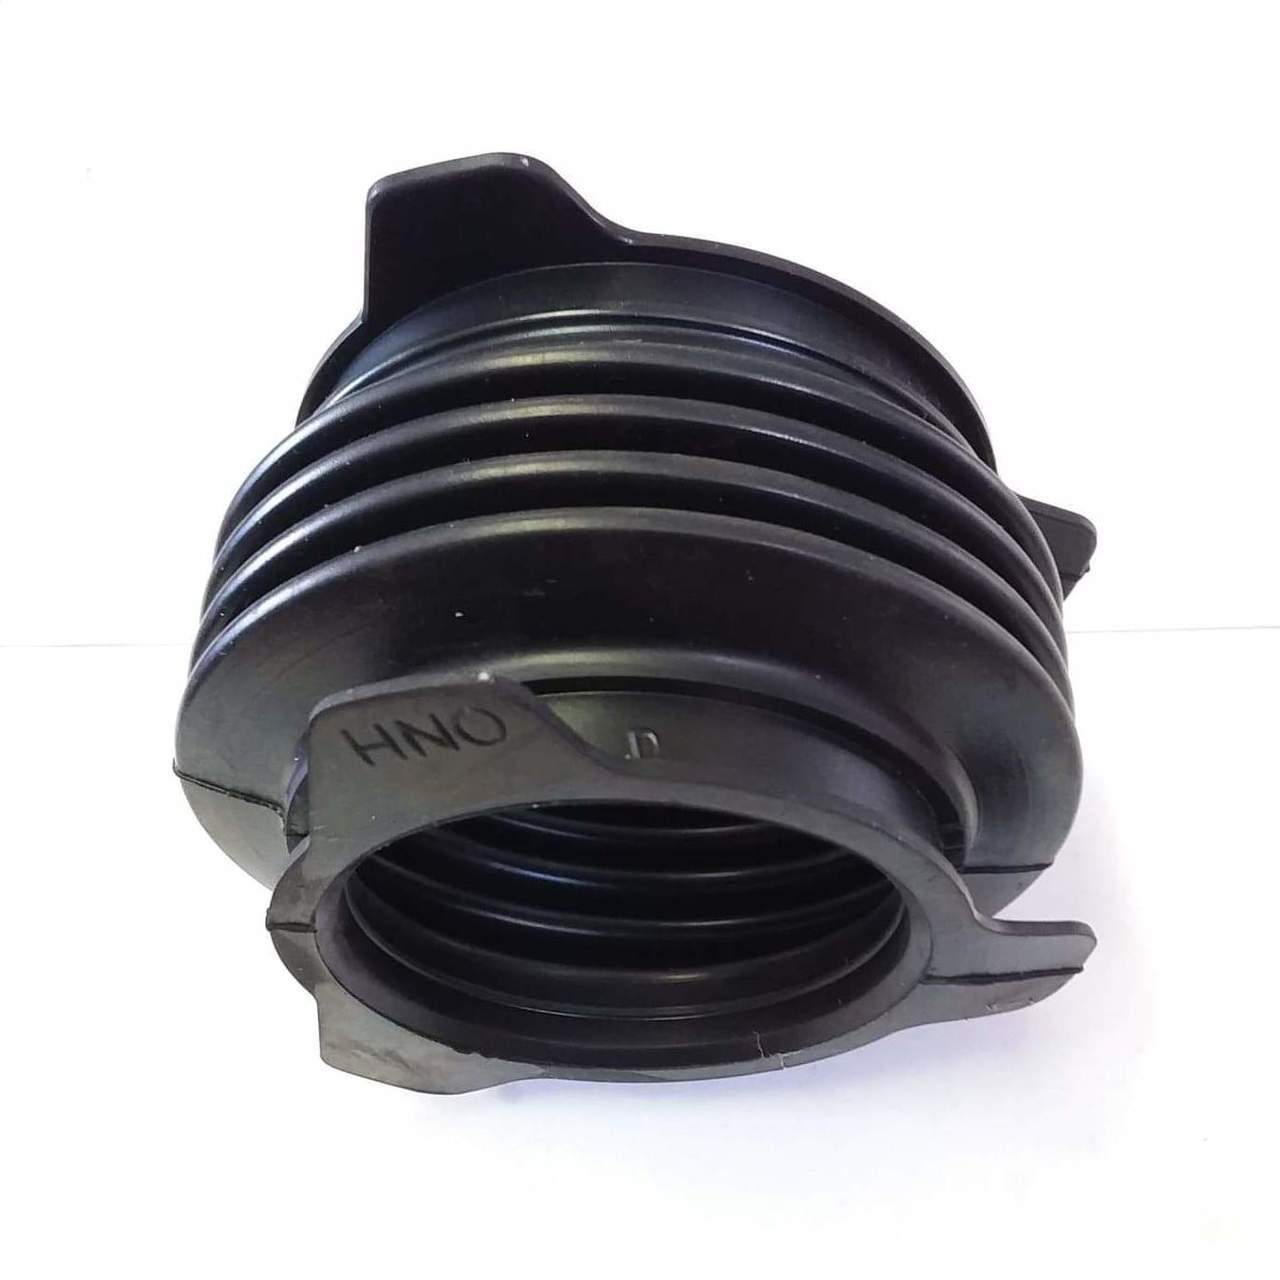 New Reproduction Air Intake Boot that fits the 1968-1981 Maico w/ Mikuni Carb